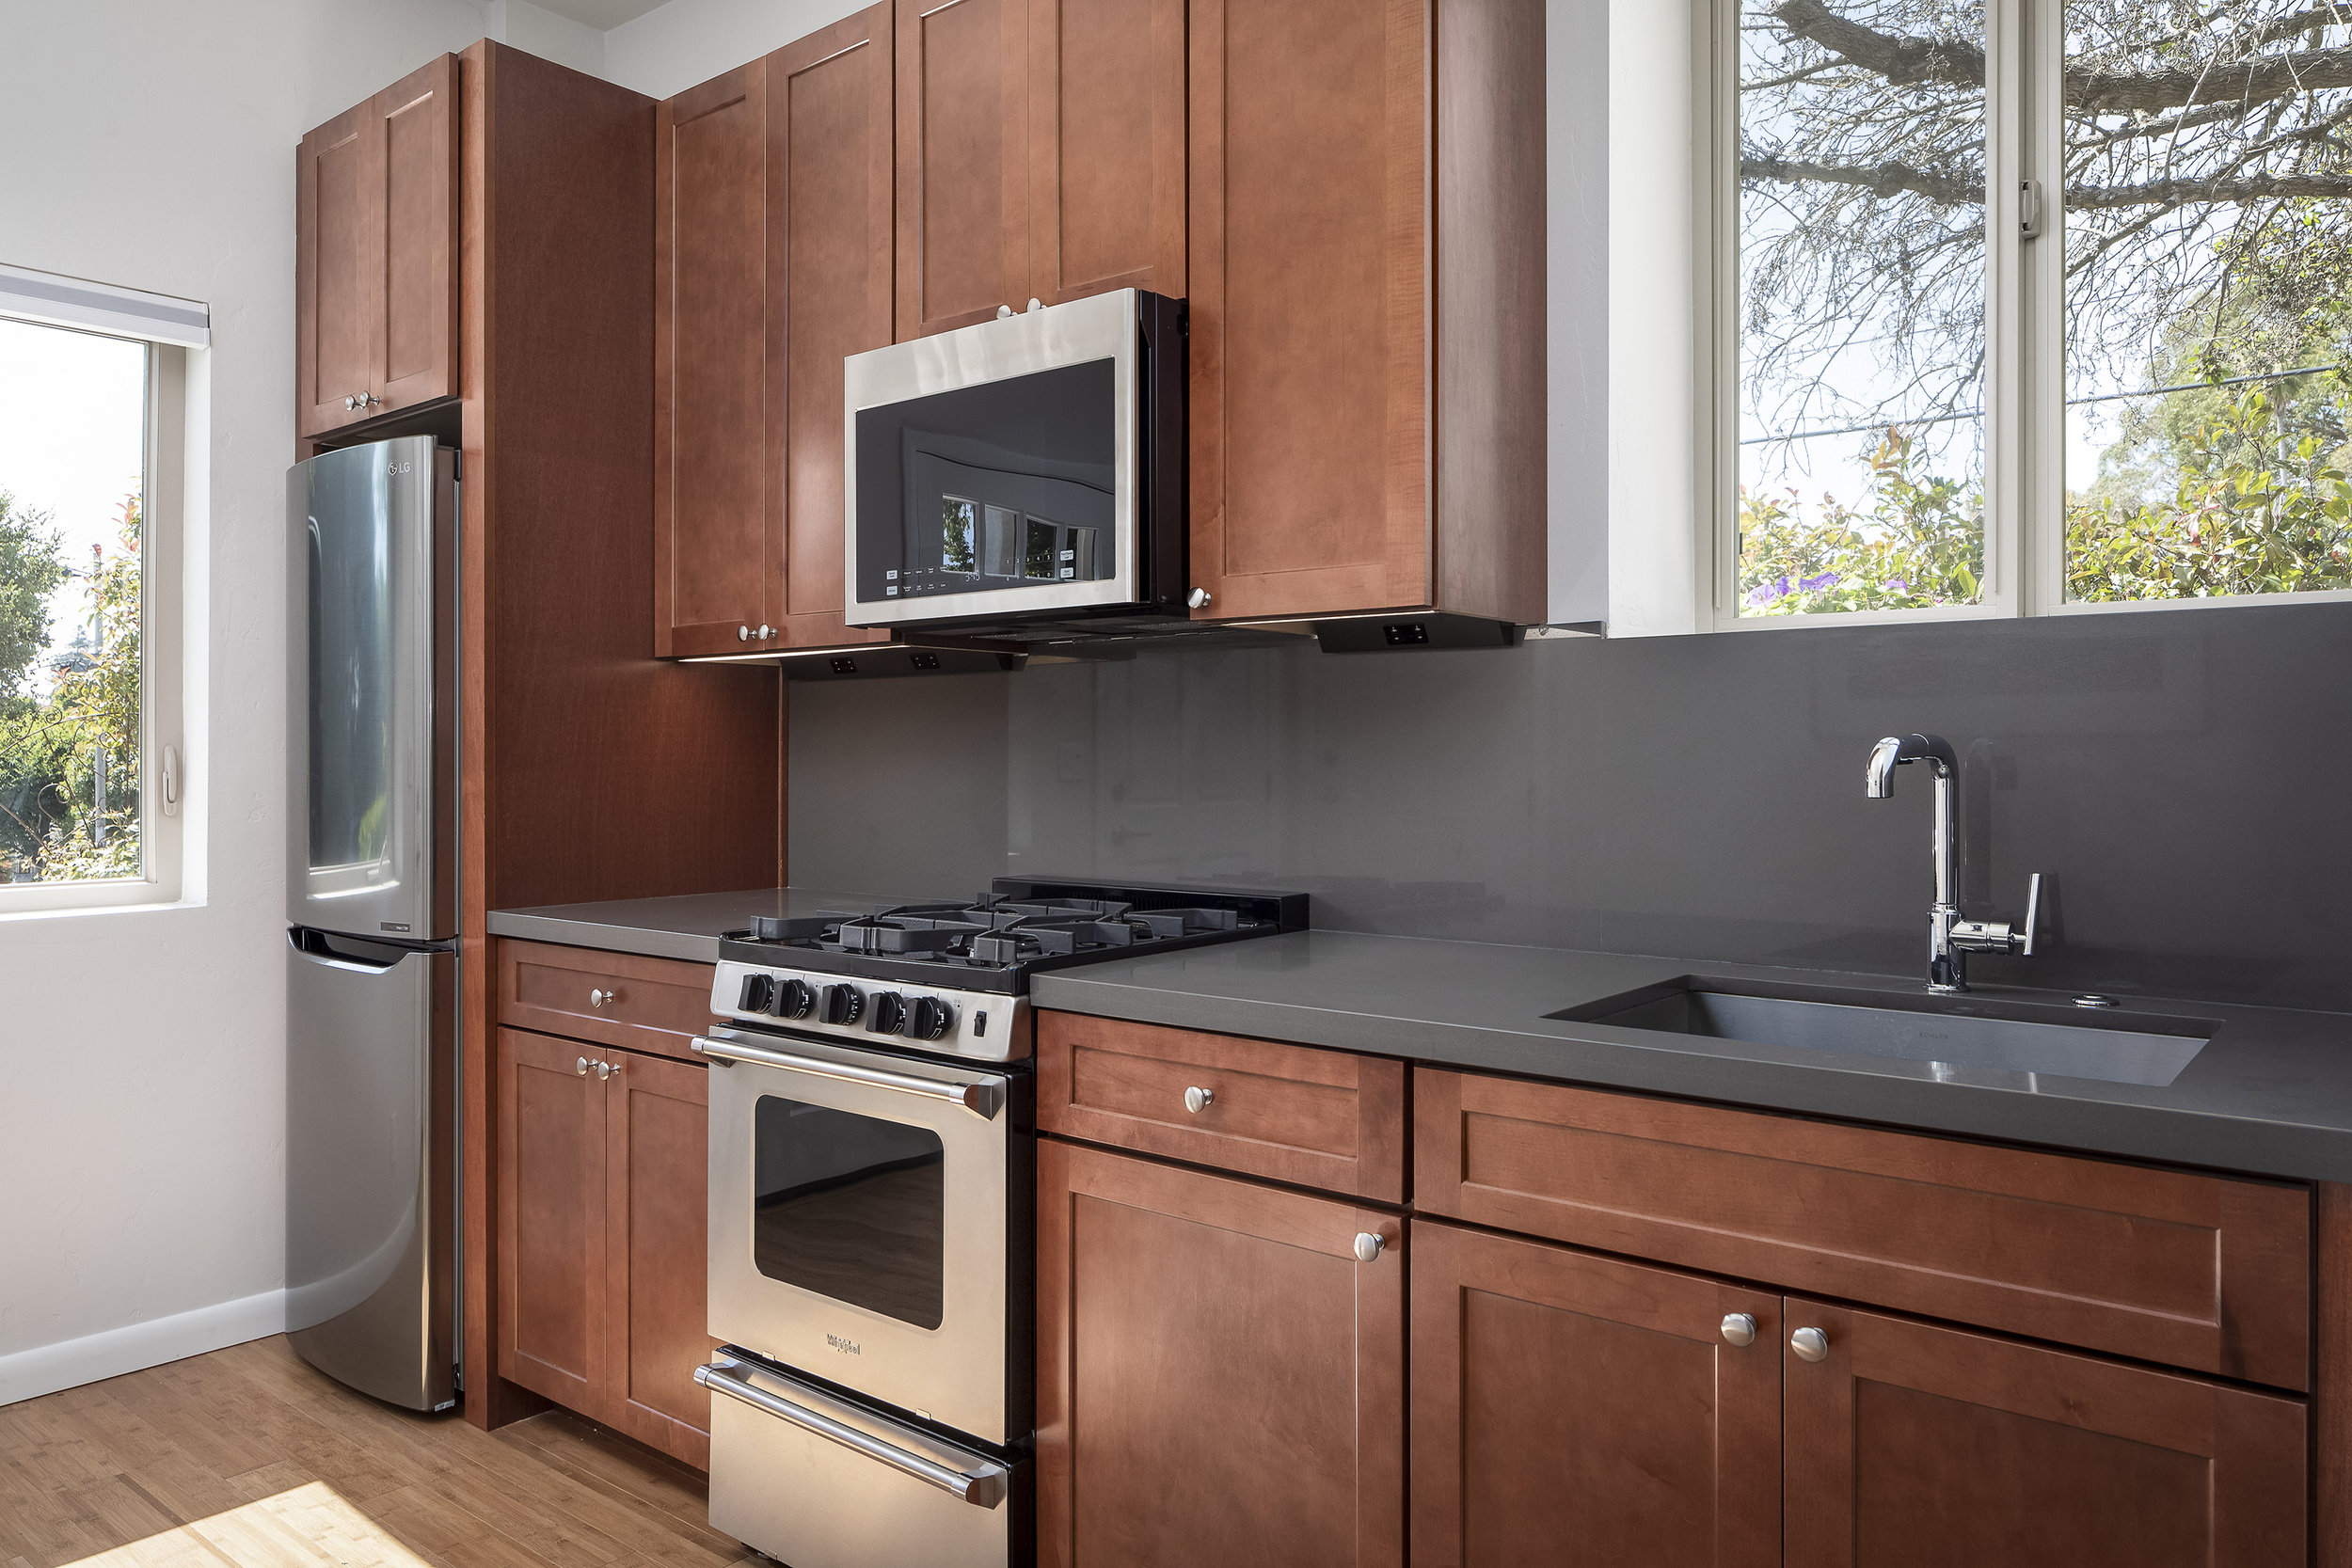 Small and efficient modern ADU kitchen